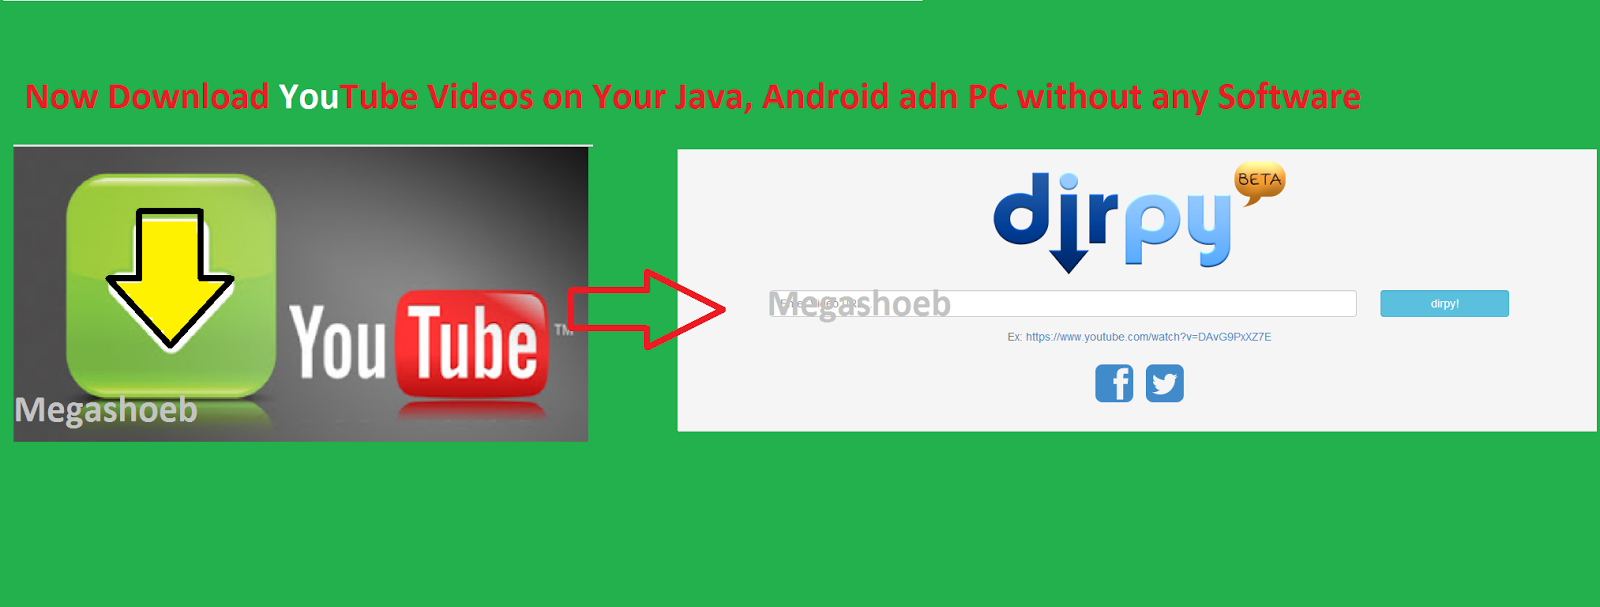 download free youtube videos online without java